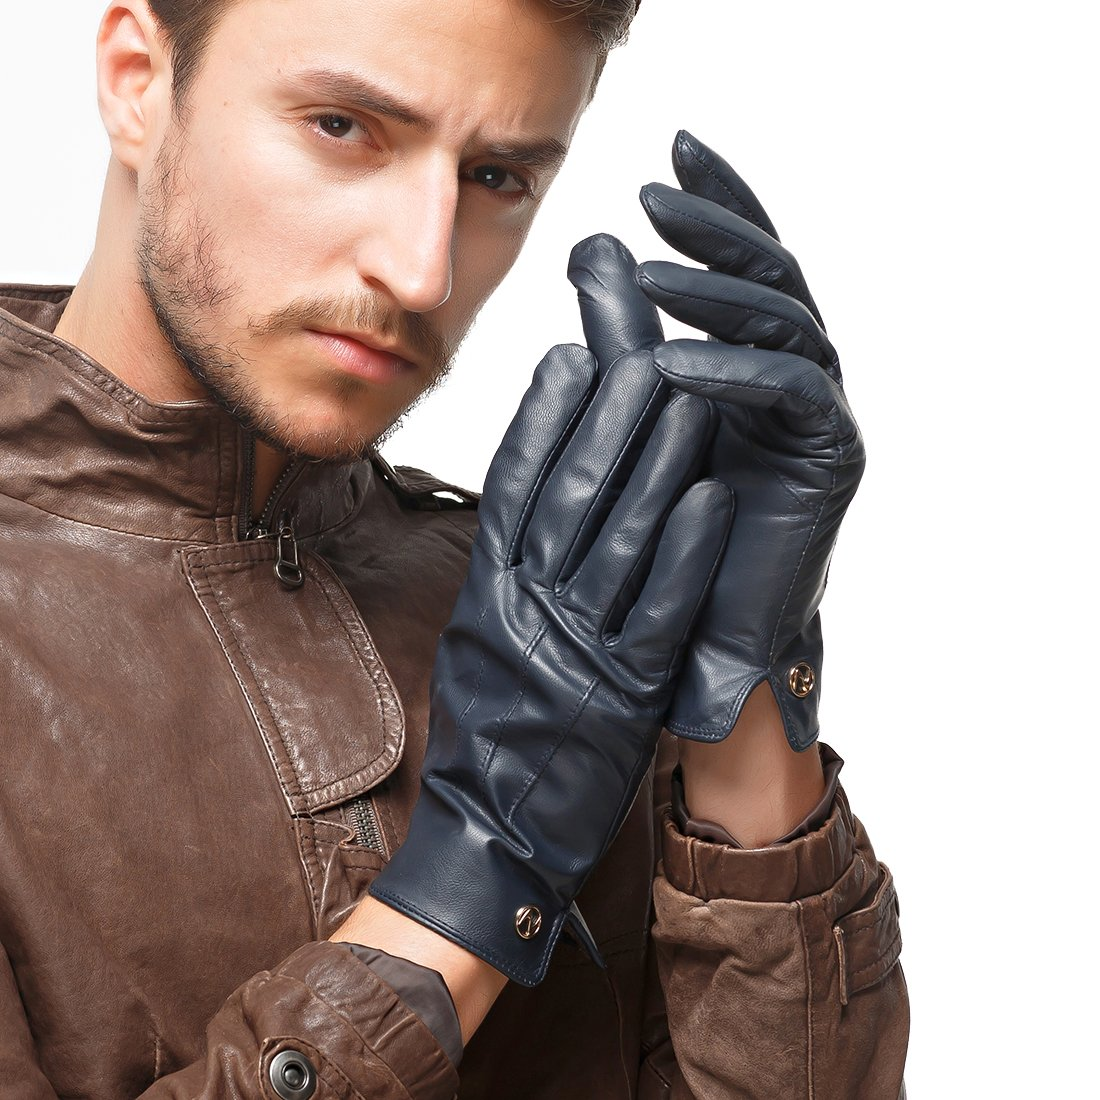 Nappaglo Men's Genuine Touchscreen Nappa Leather Gloves Driving Winter Warm Mittens (L (Palm Girth:8.5''-9''), Dark Navy Blue (Touchscreen))